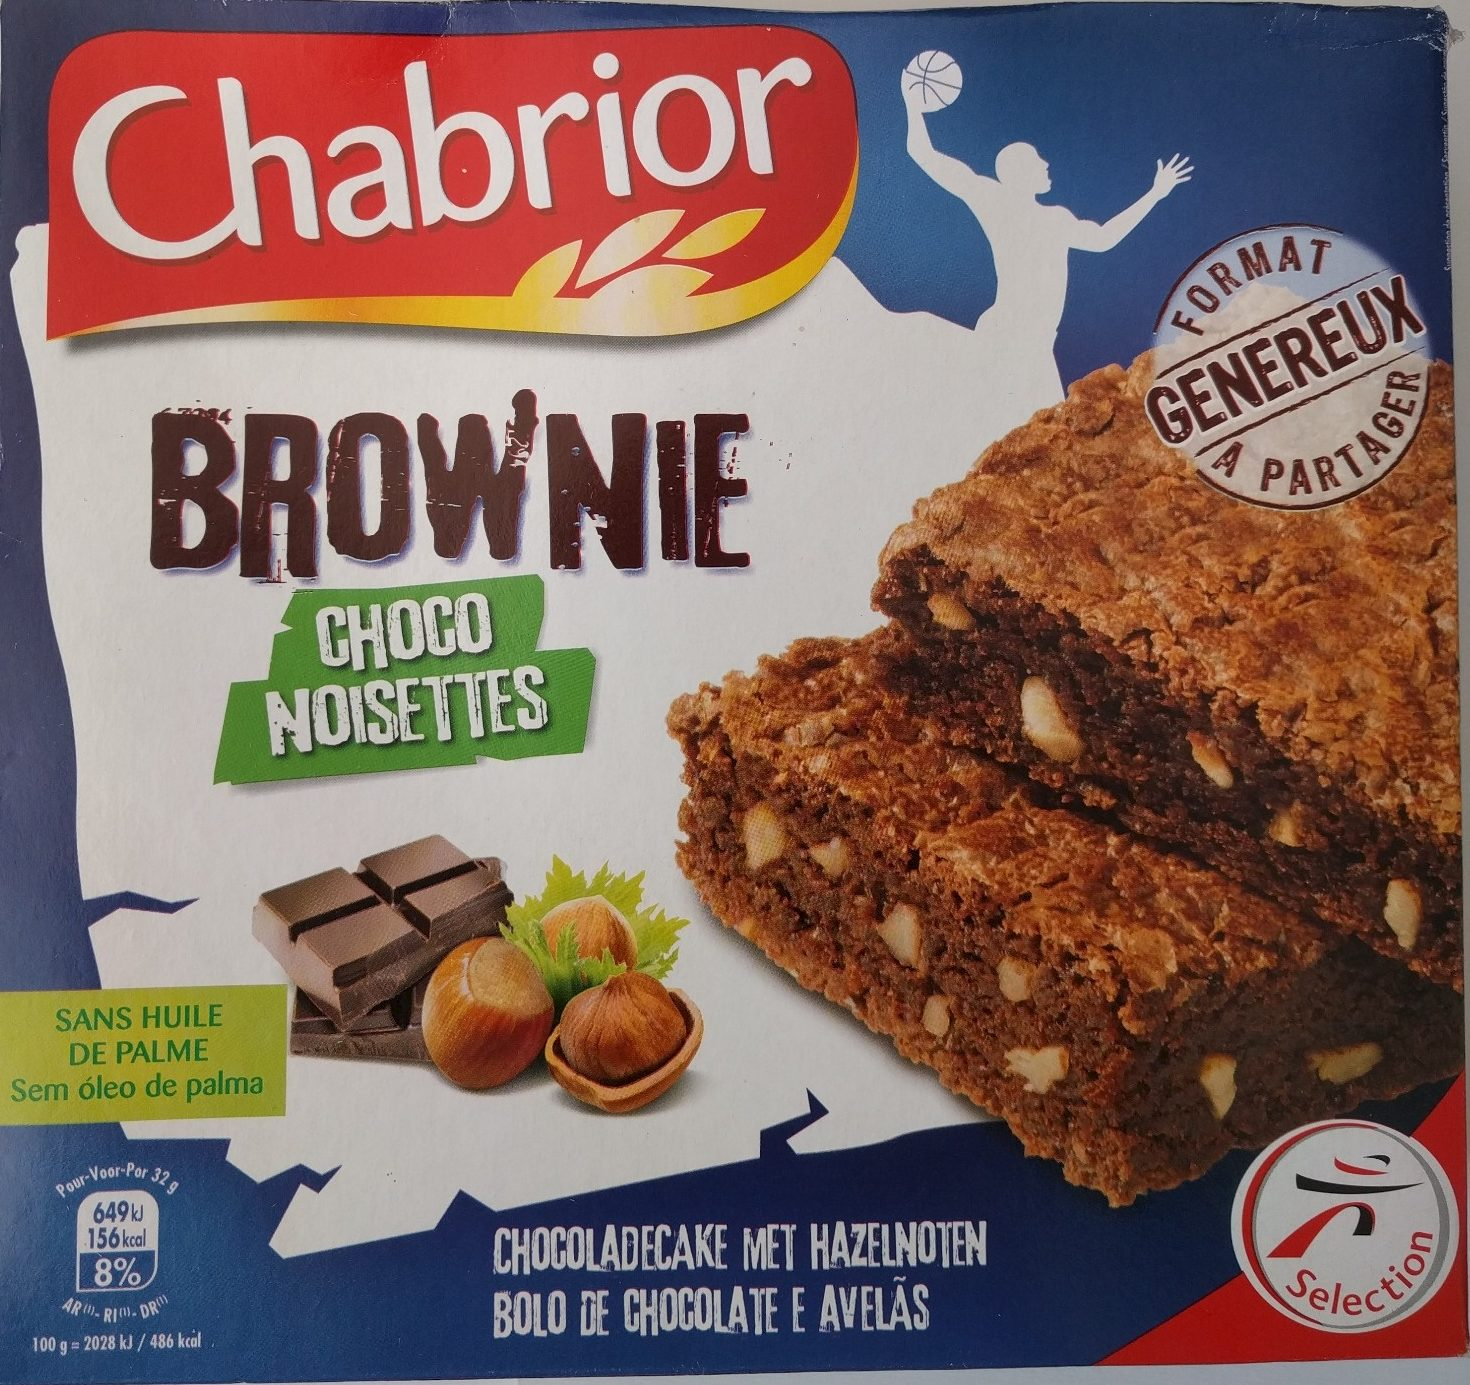 Brownie choco noisettes - Product